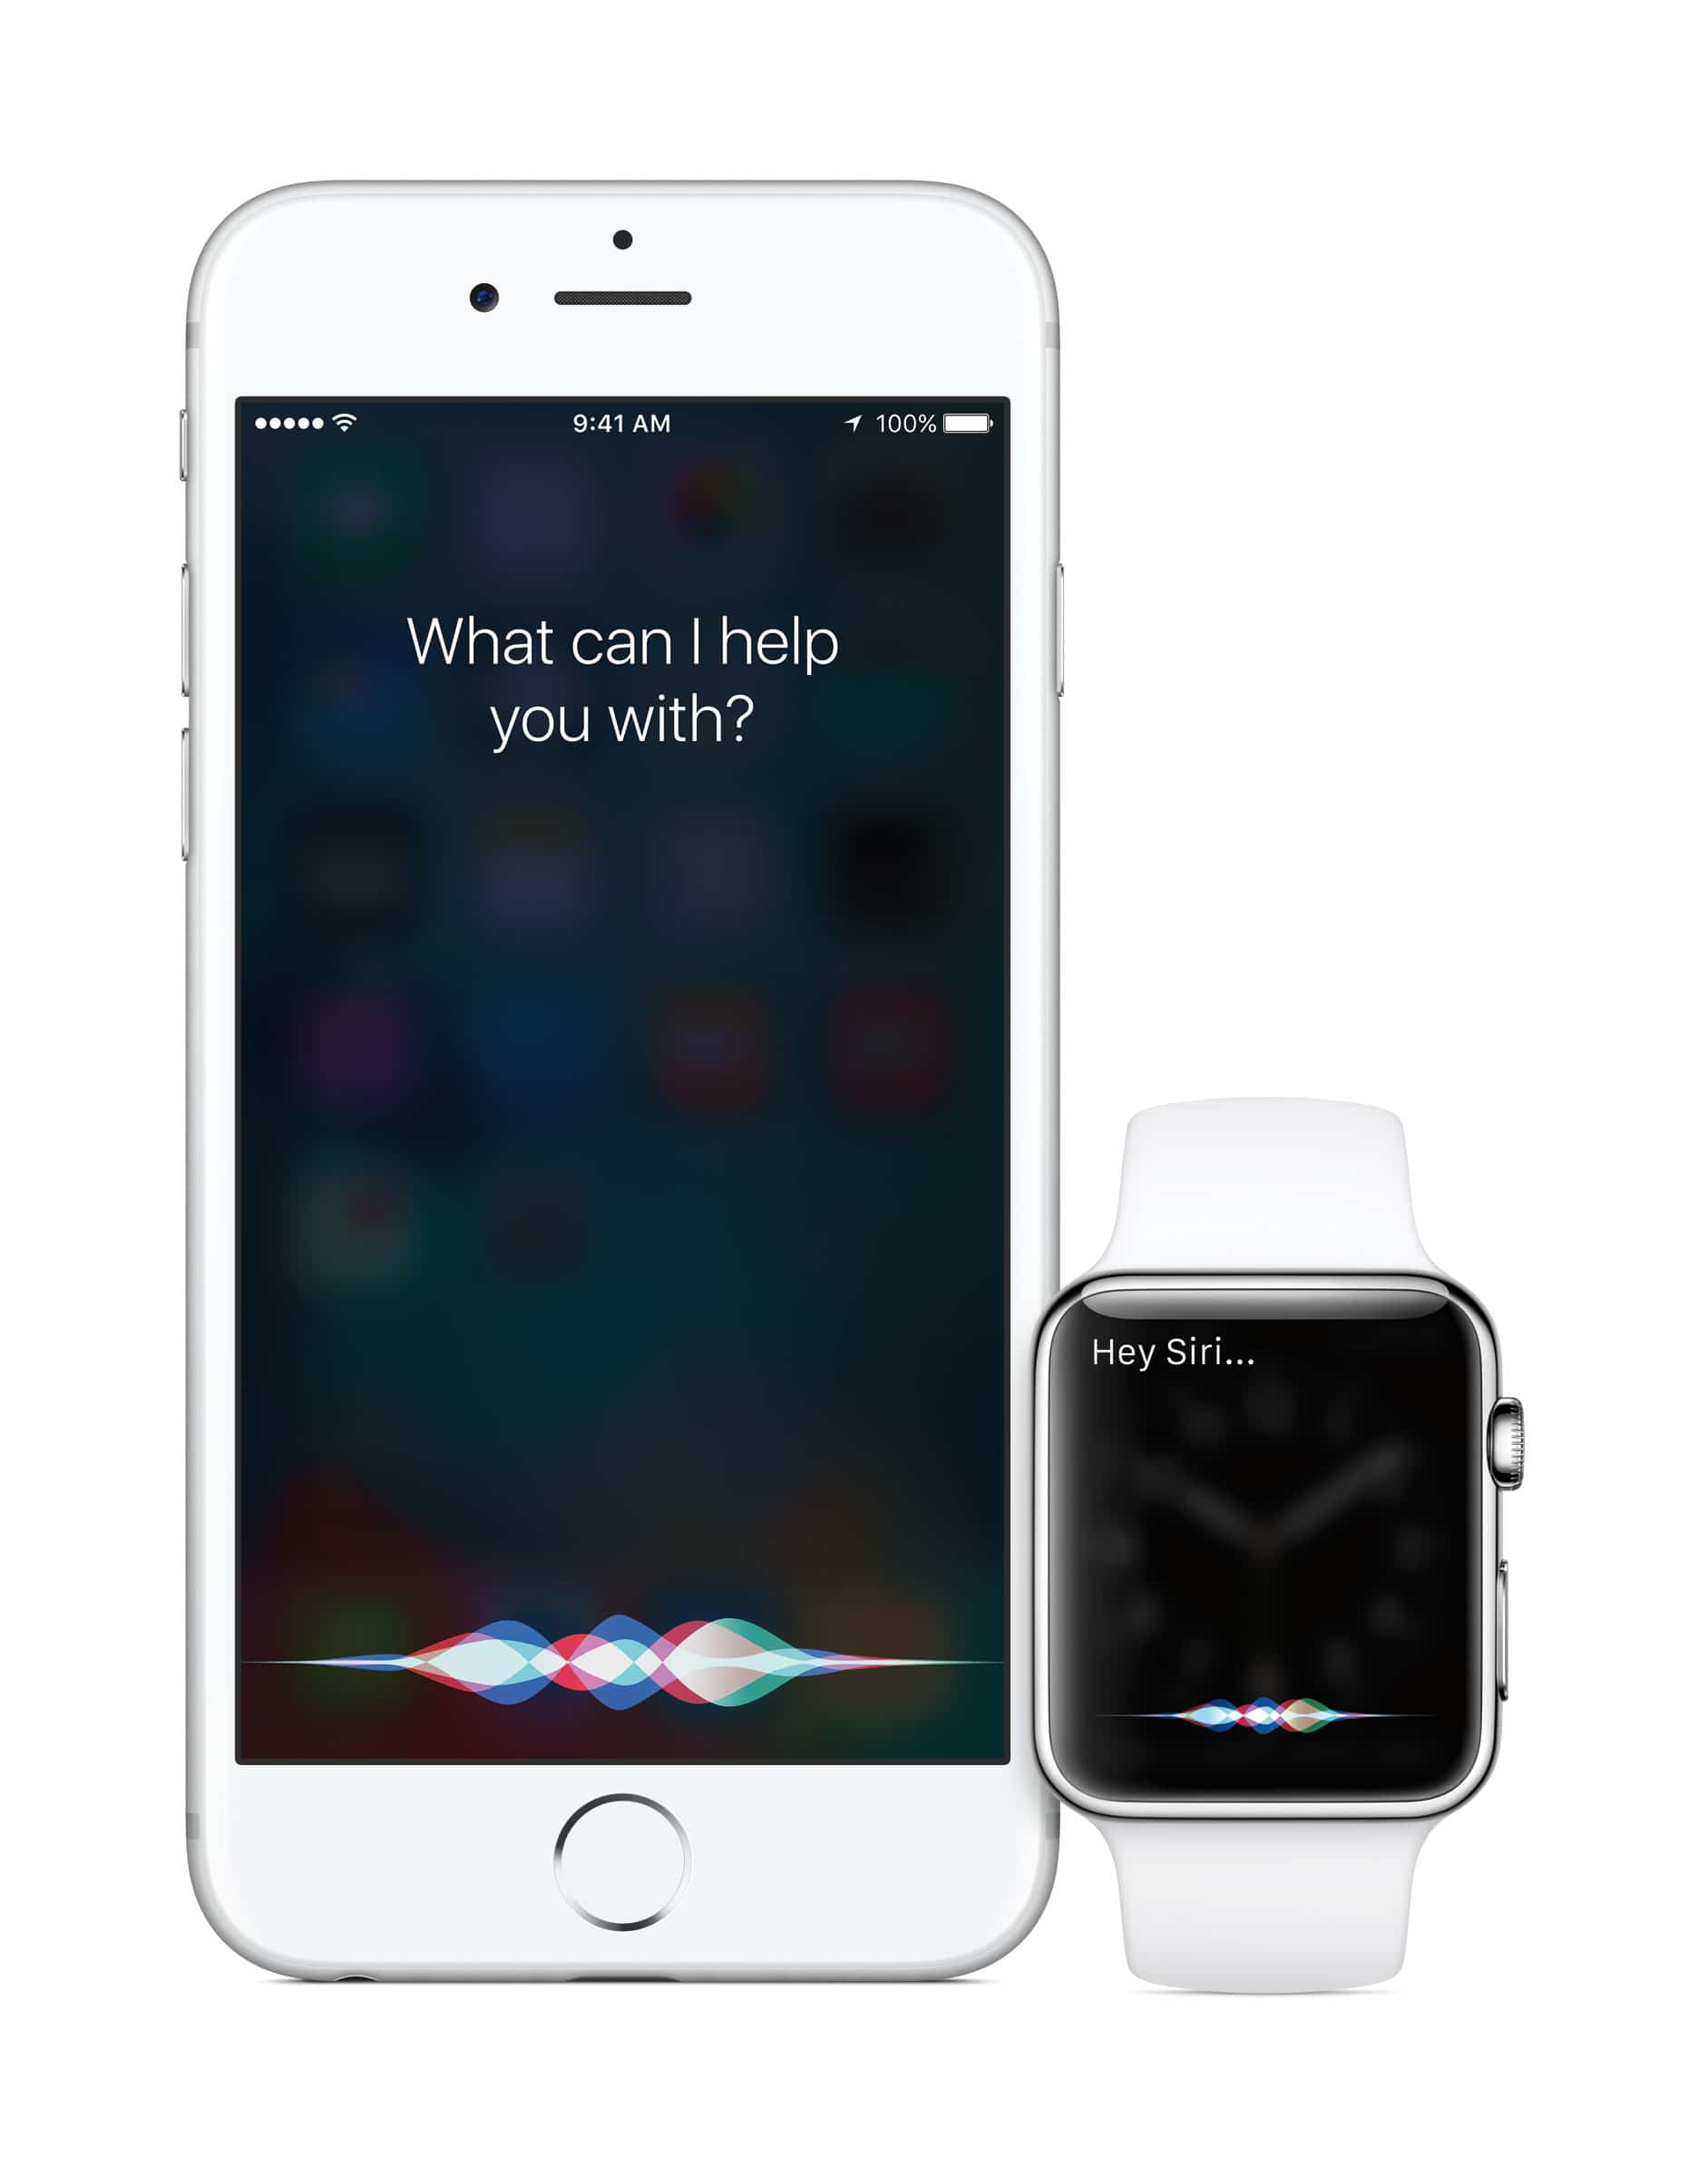 Siri en iPhone6s y AppleWatch con iOS 9